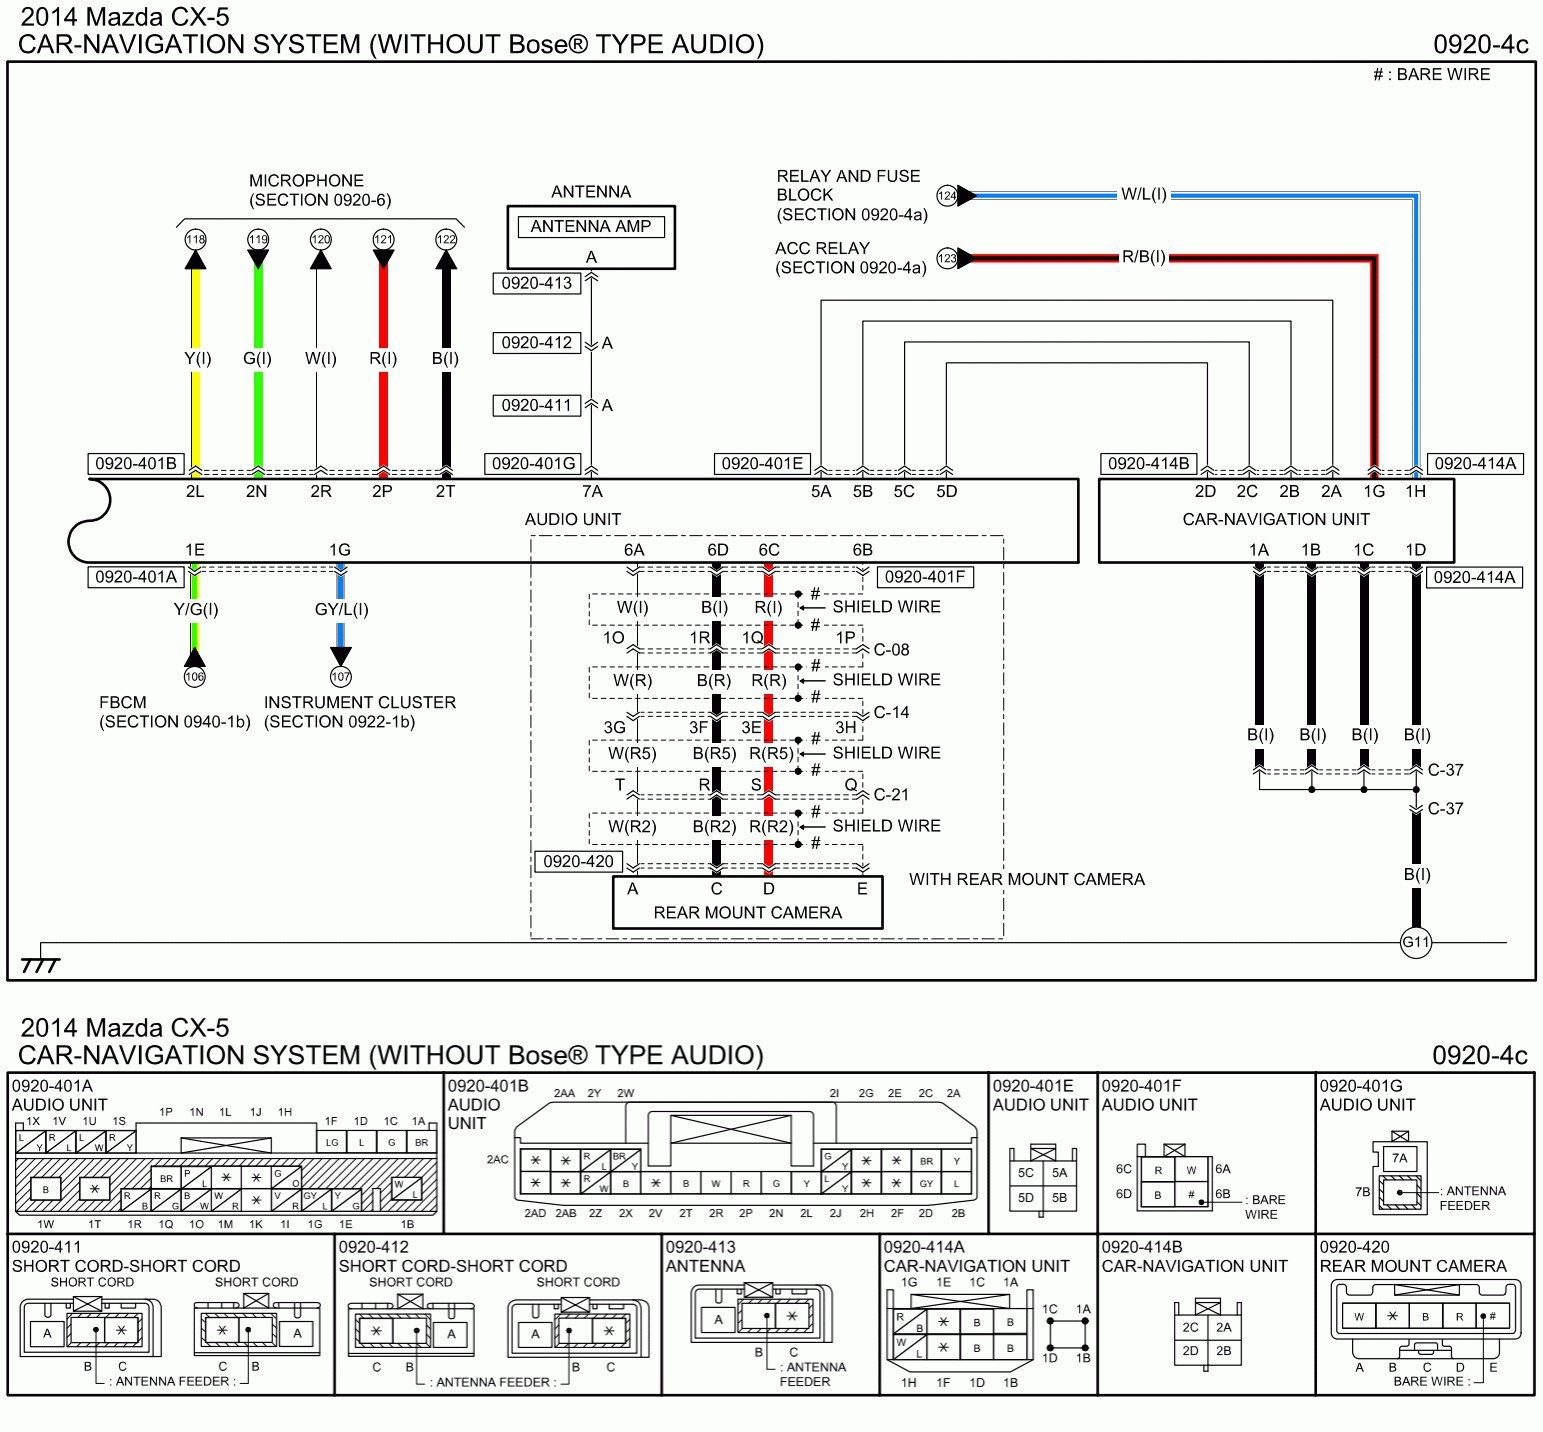 alpine ktp 445u wiring diagram Collection-Luxury Alpine Ktp 445u Wiring Diagram 18-d